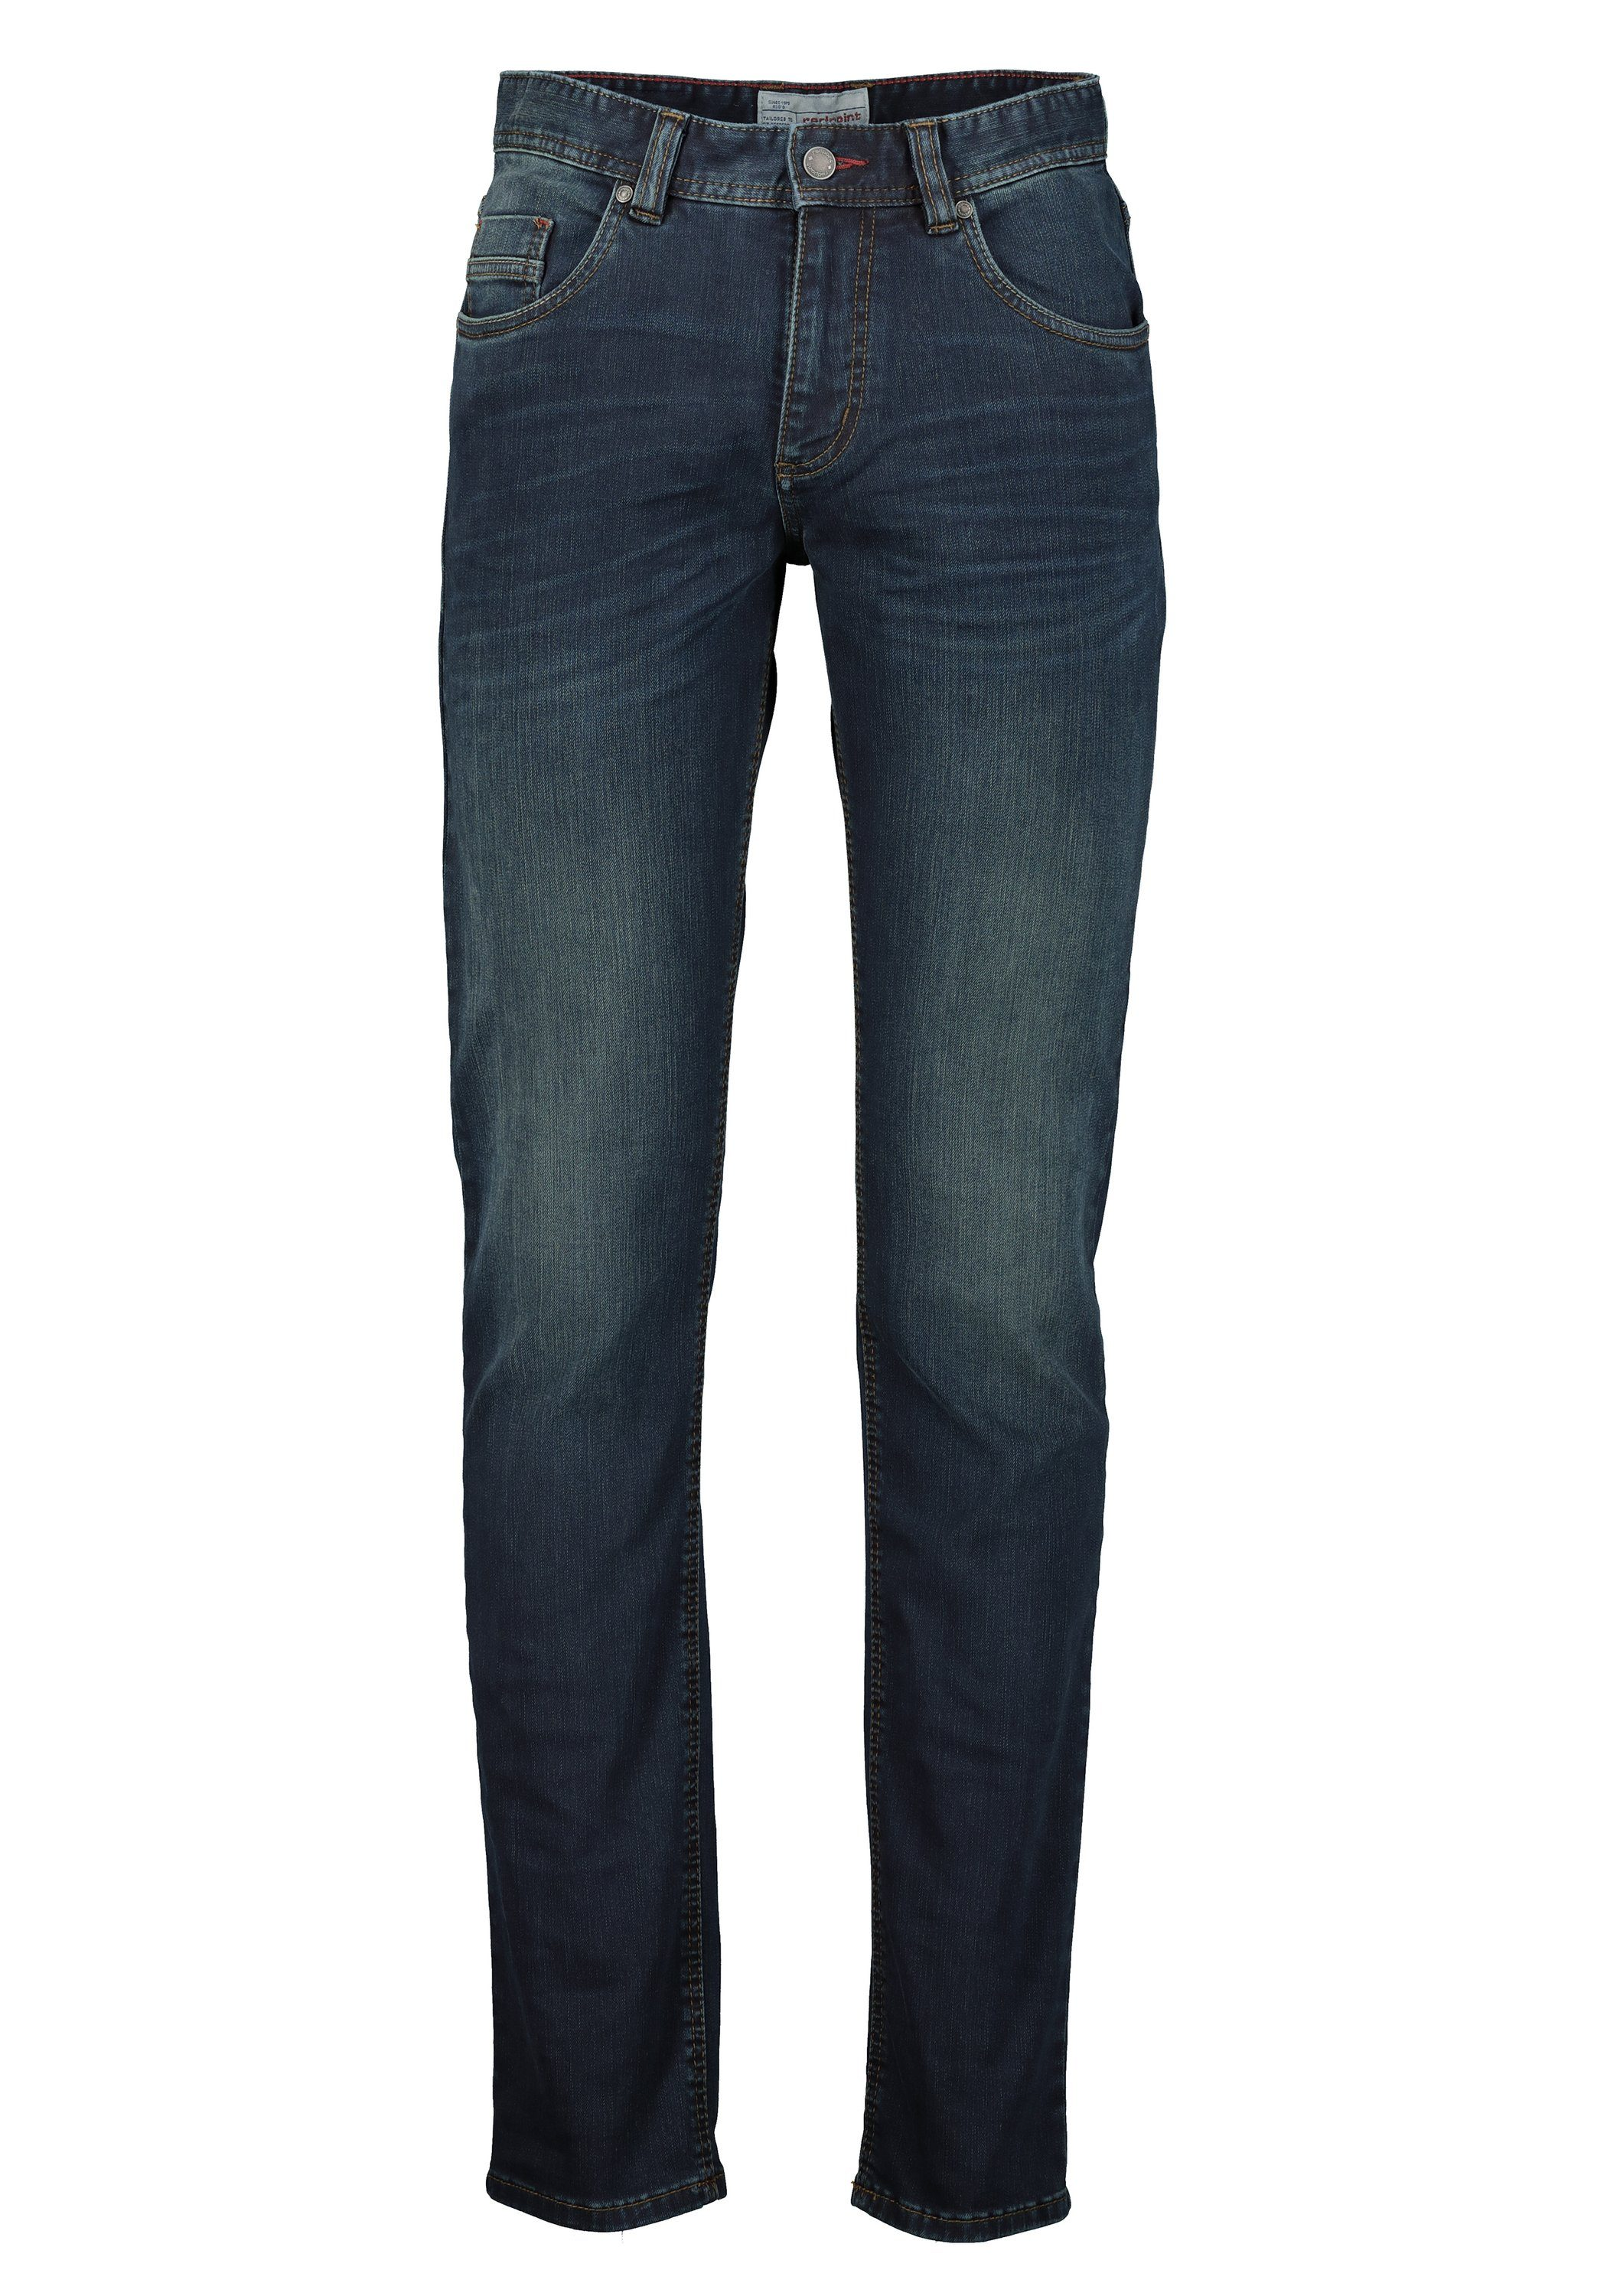 Redpoint Stretch 5-Pocket Jeans Barrie | Bekleidung > Jeans > Sonstige Jeans | Blau | Jeans - Elasthan | Redpoint